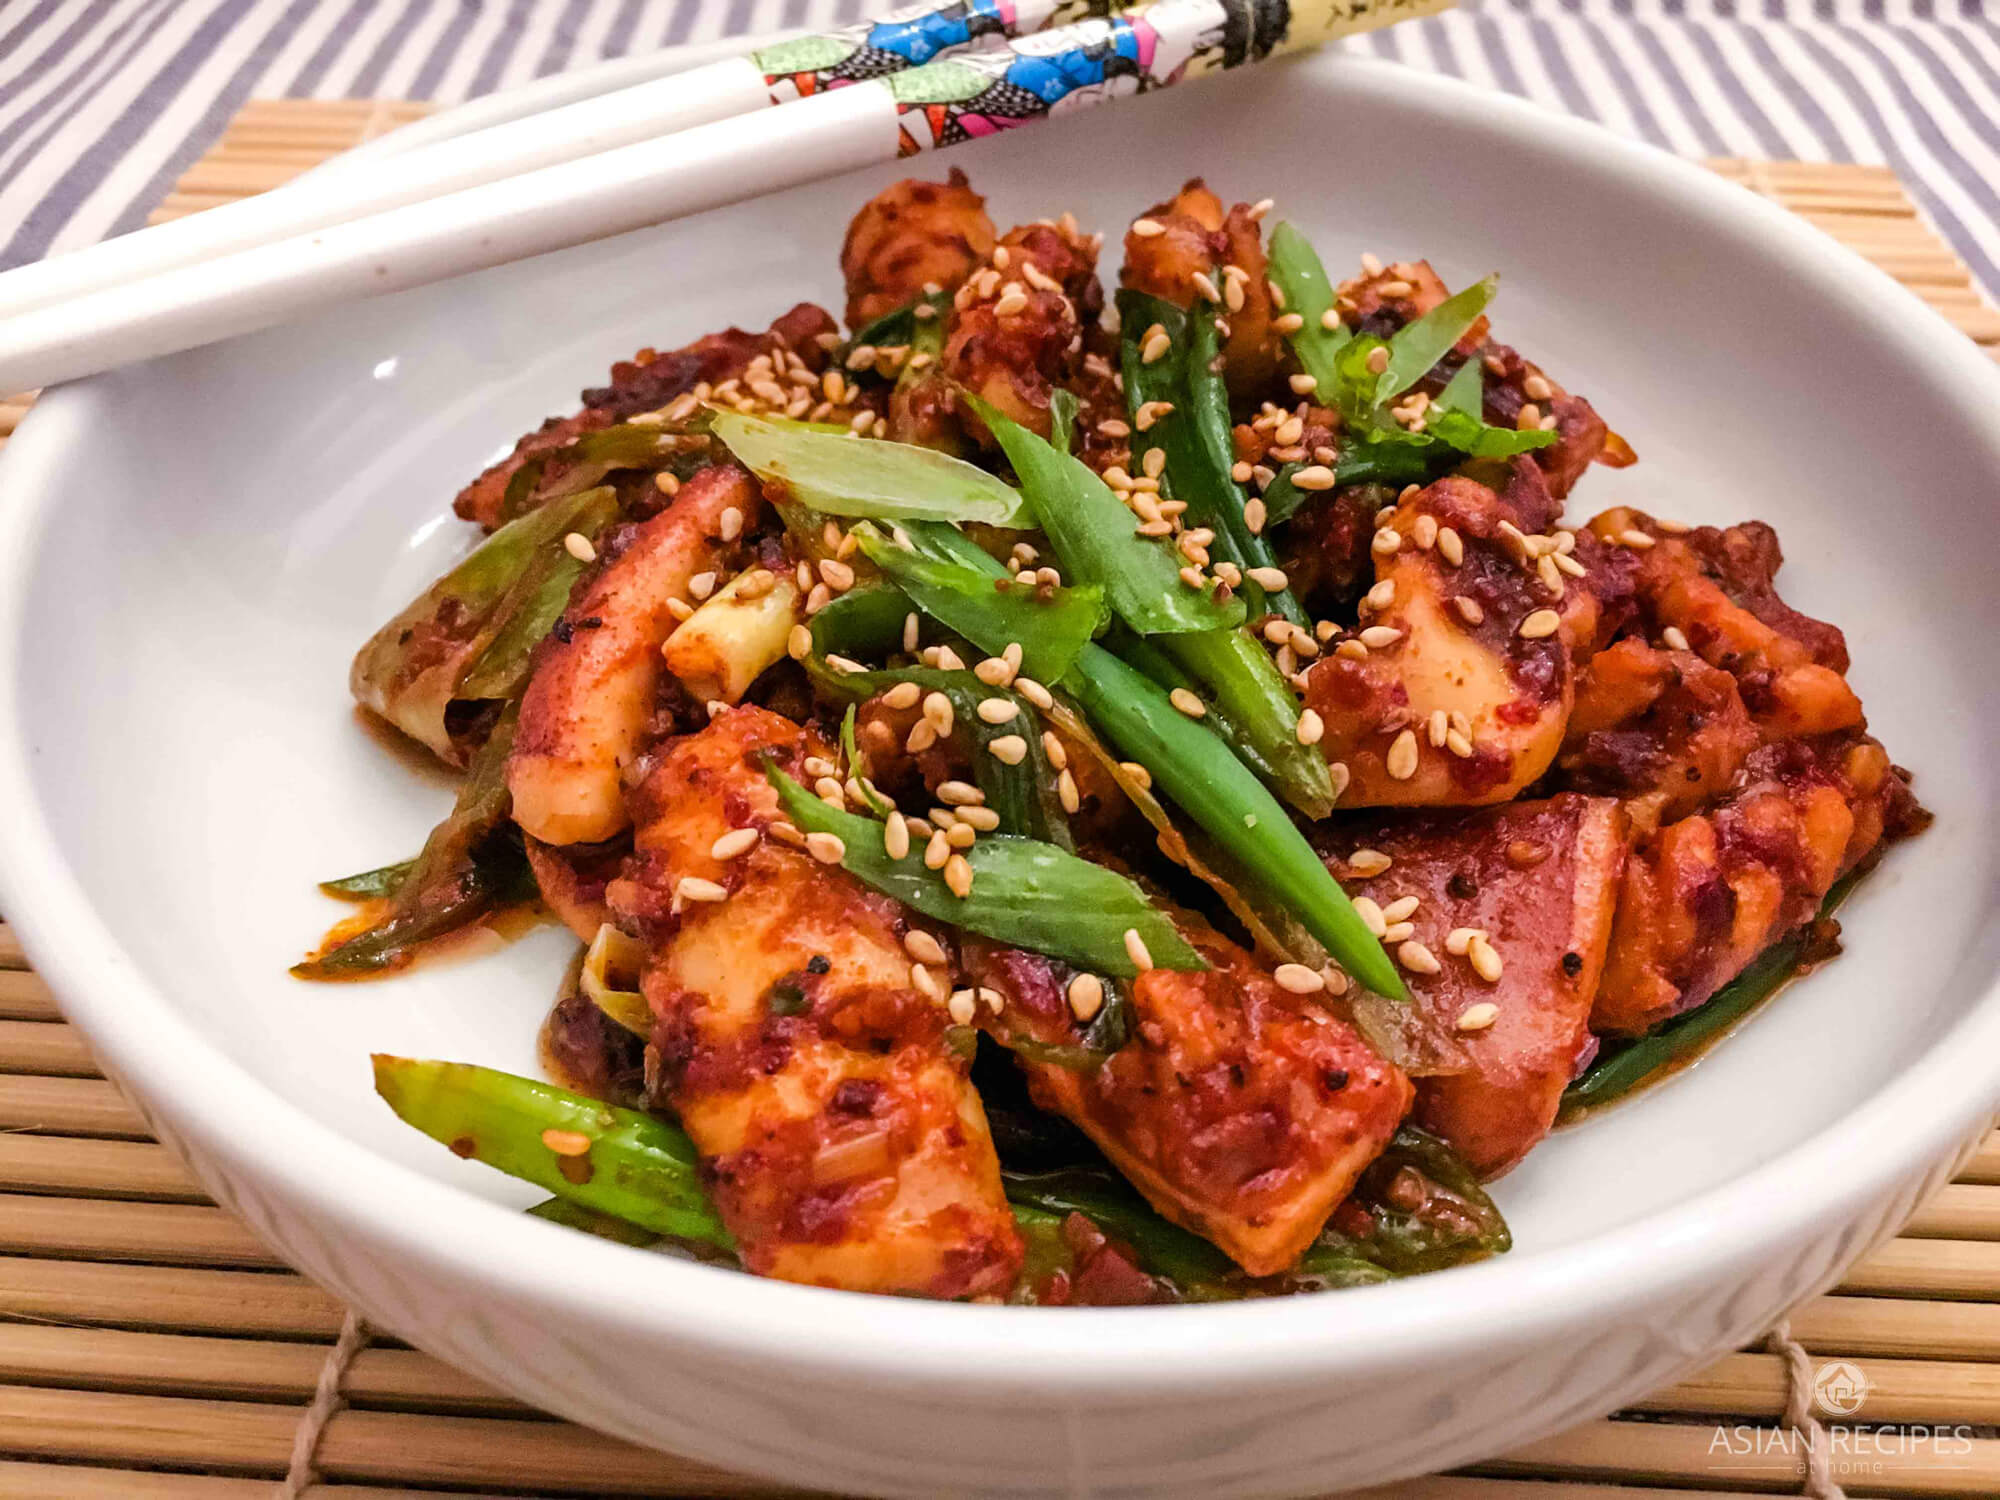 This simple Korean spicy stir-fried squid recipe is packed with flavor and only utilizes a few Korean must-have pantry ingredients.